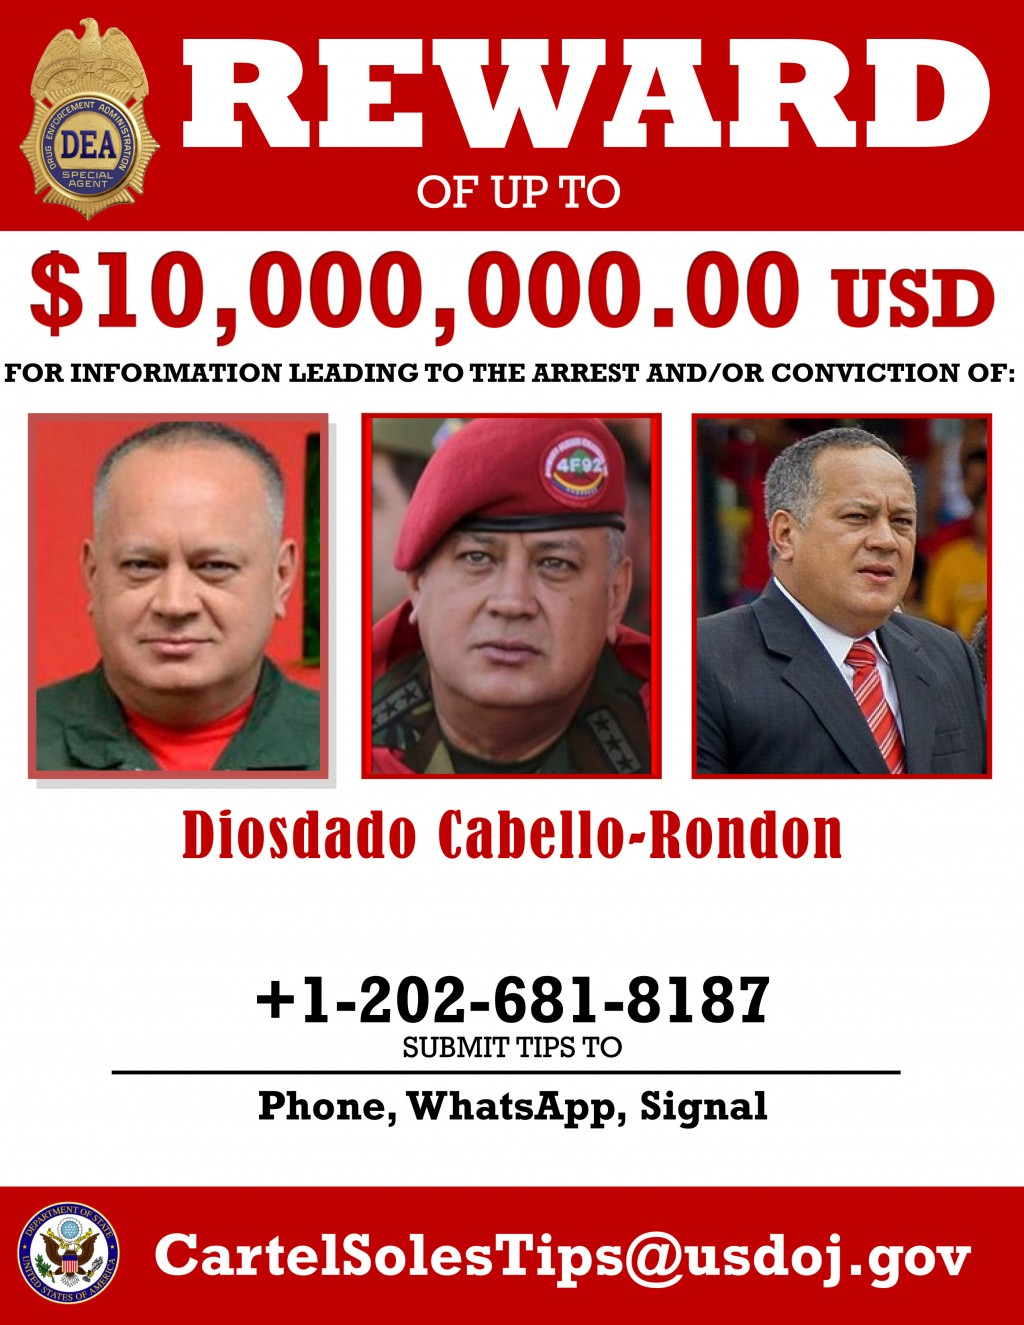 This image provided by the U.S. Department of Justice shows a reward poster for Diosdado Cabello that was released on Thursday, March 26, 2020. The U....